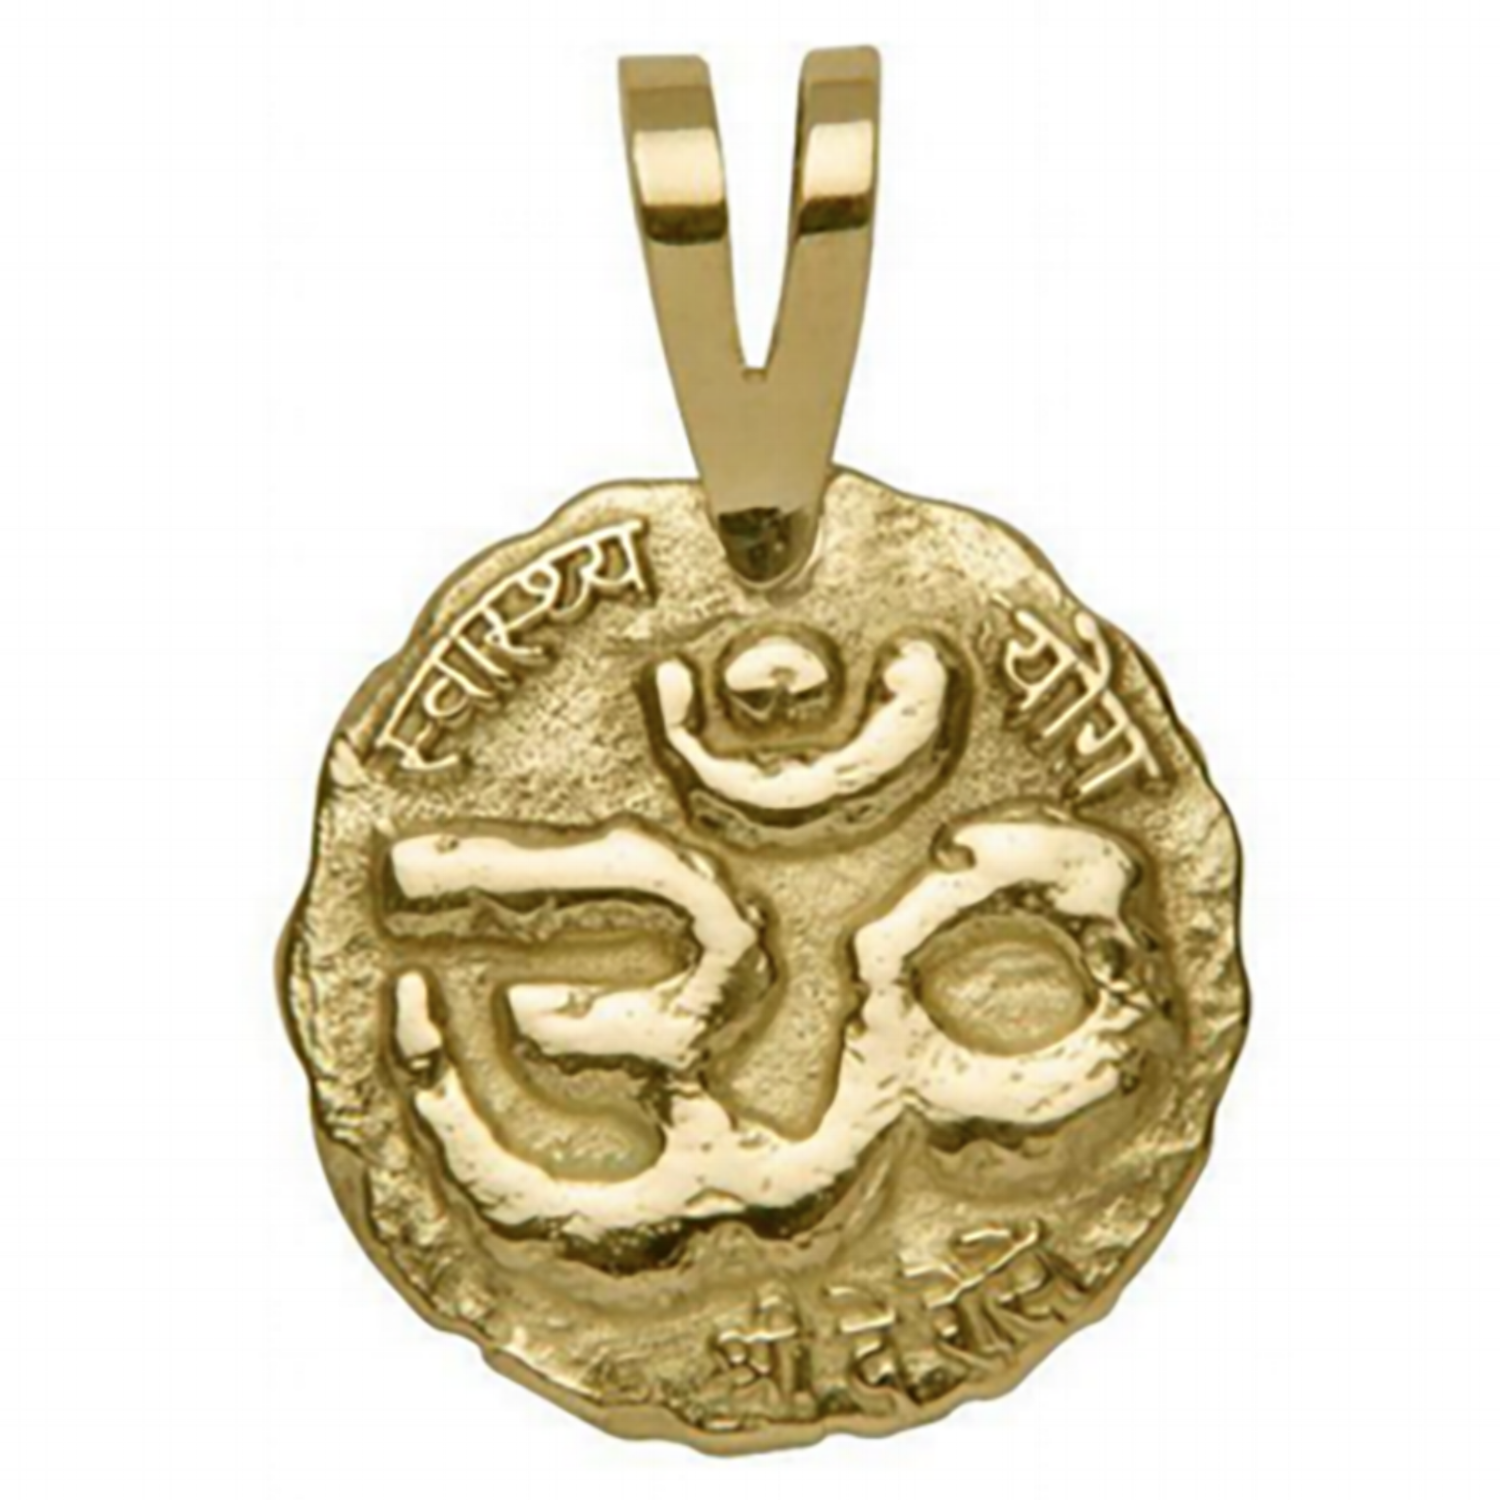 A PENDENT WITH HISTORY - Our double-sided pendant can be used simply as an accessory or for mindfulness meditation.The ancient ÔM symbol displayed on our pendant represents the sound of the universe and is considered the matrix of all sounds. It's the ancient Indian equivalent of the